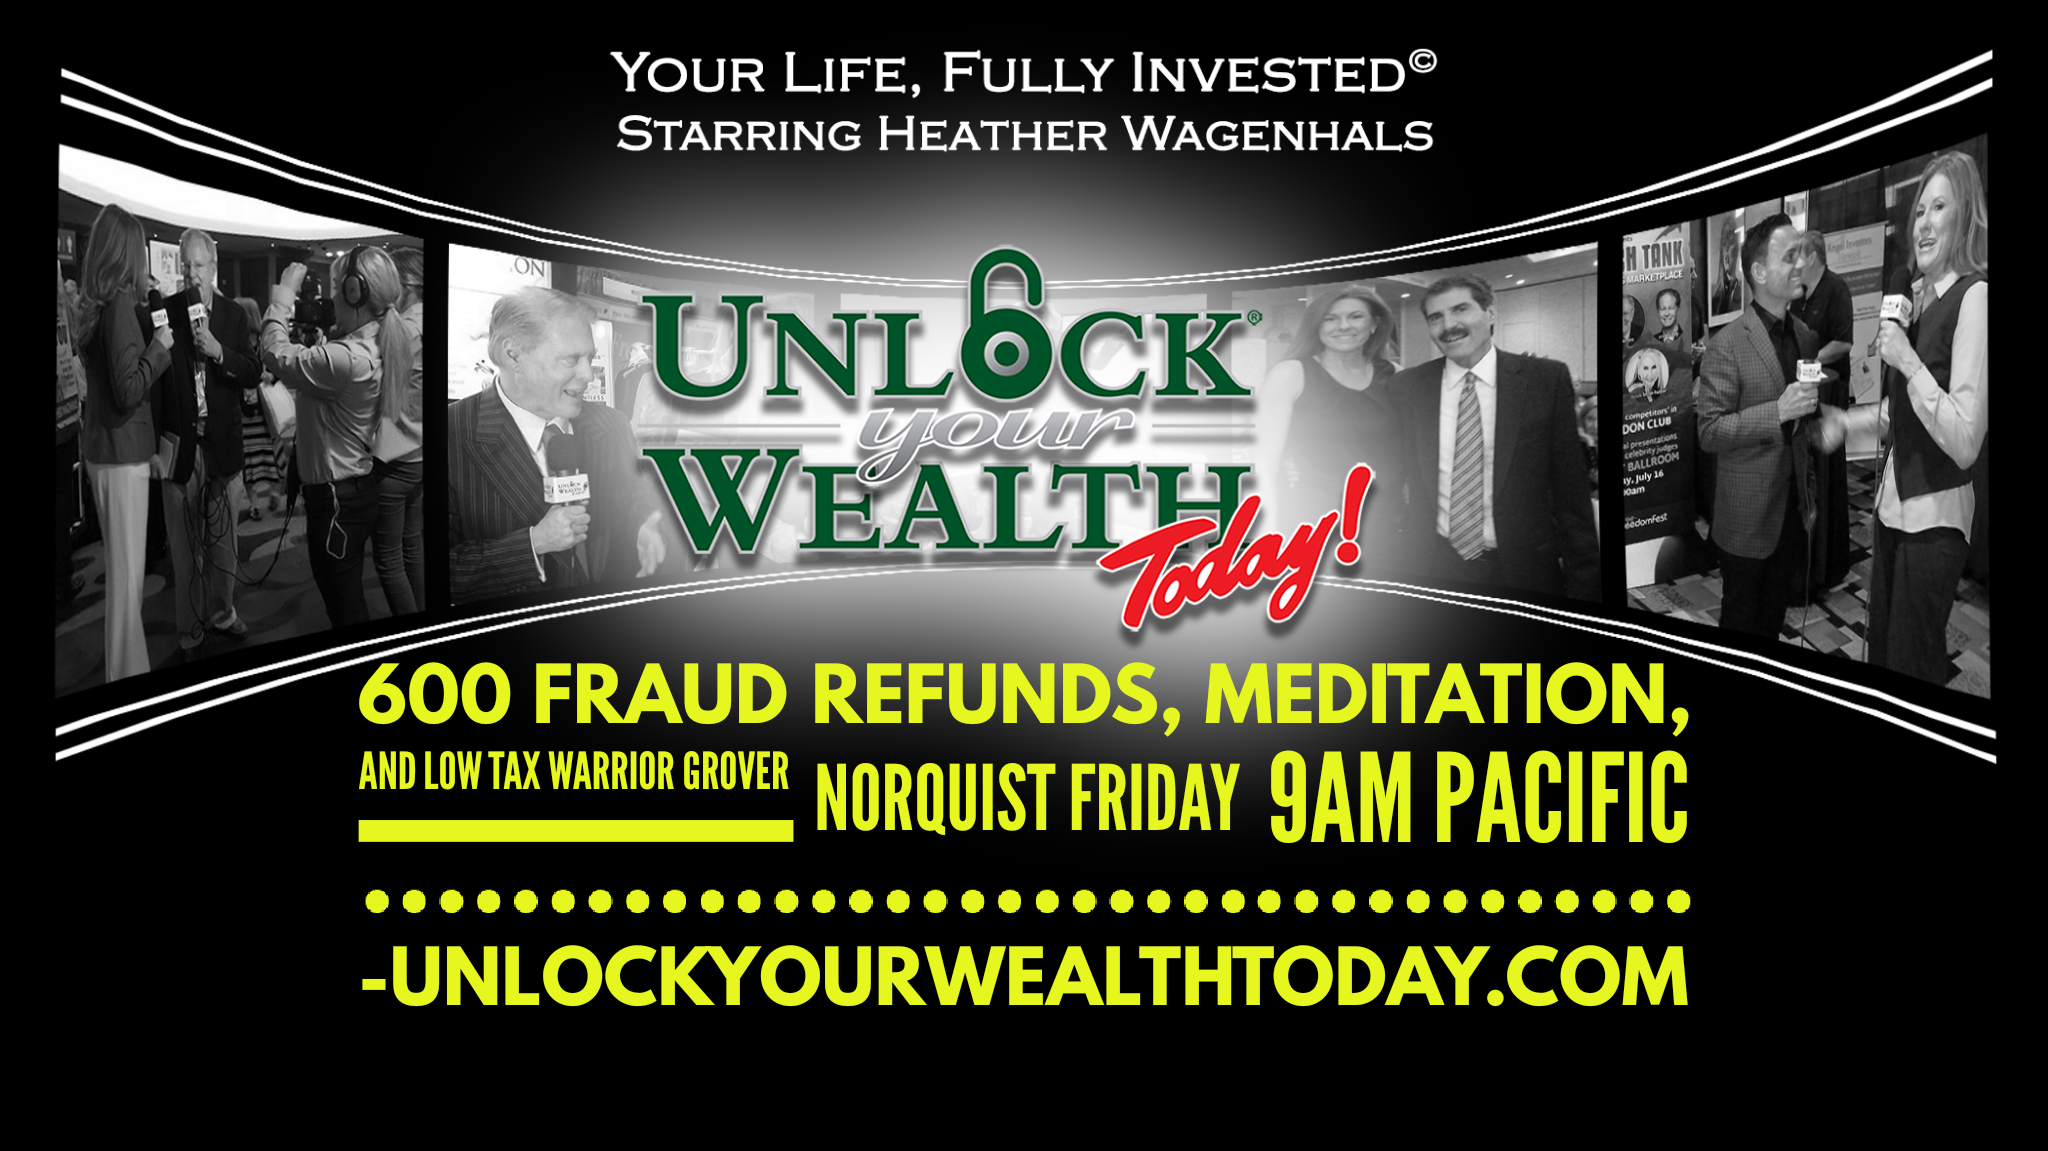 600 fraud refunds, grover norquist, meditation, freedomfest Unlock Your Wealth Today